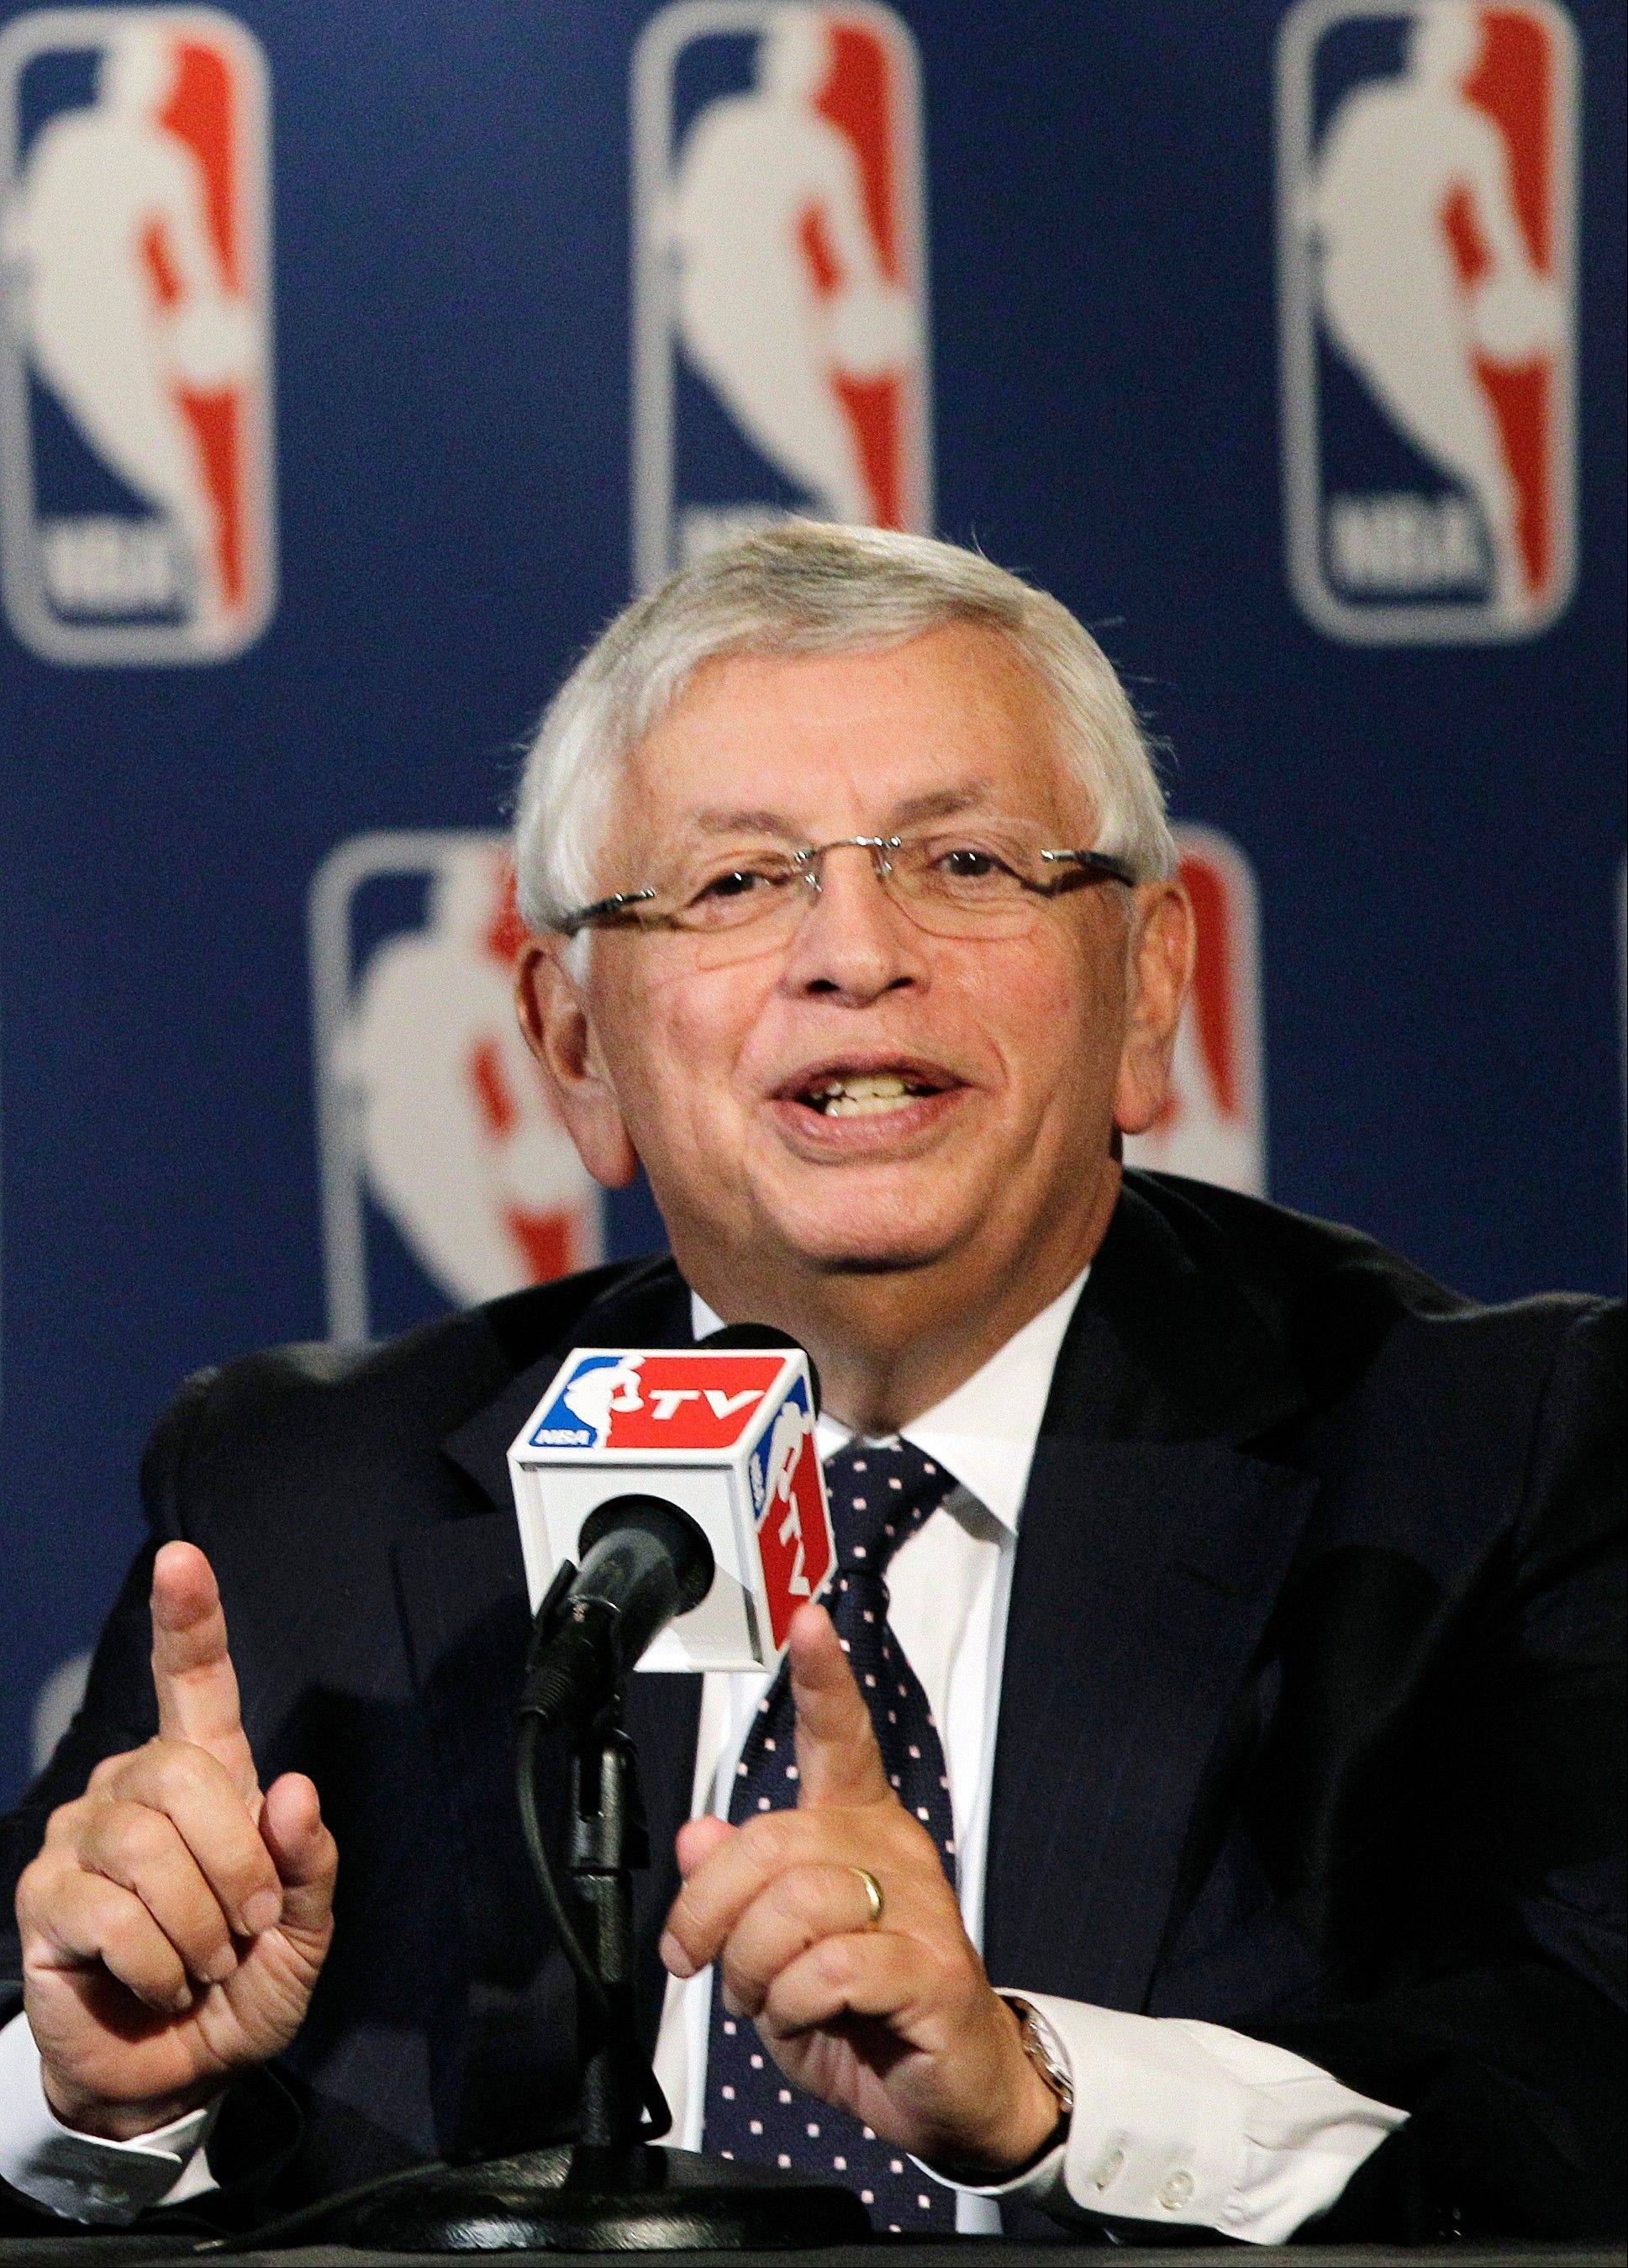 NBA Commissioner David Stern speaks during a basketball news conference following Board of Governors meetings in New York, Thursday, Oct. 25, 2012. Stern announced he will retire on Feb. 1, 2014, 30 years after he took charge of the league. He will be replaced by Deputy Commissioner Adam Silver.